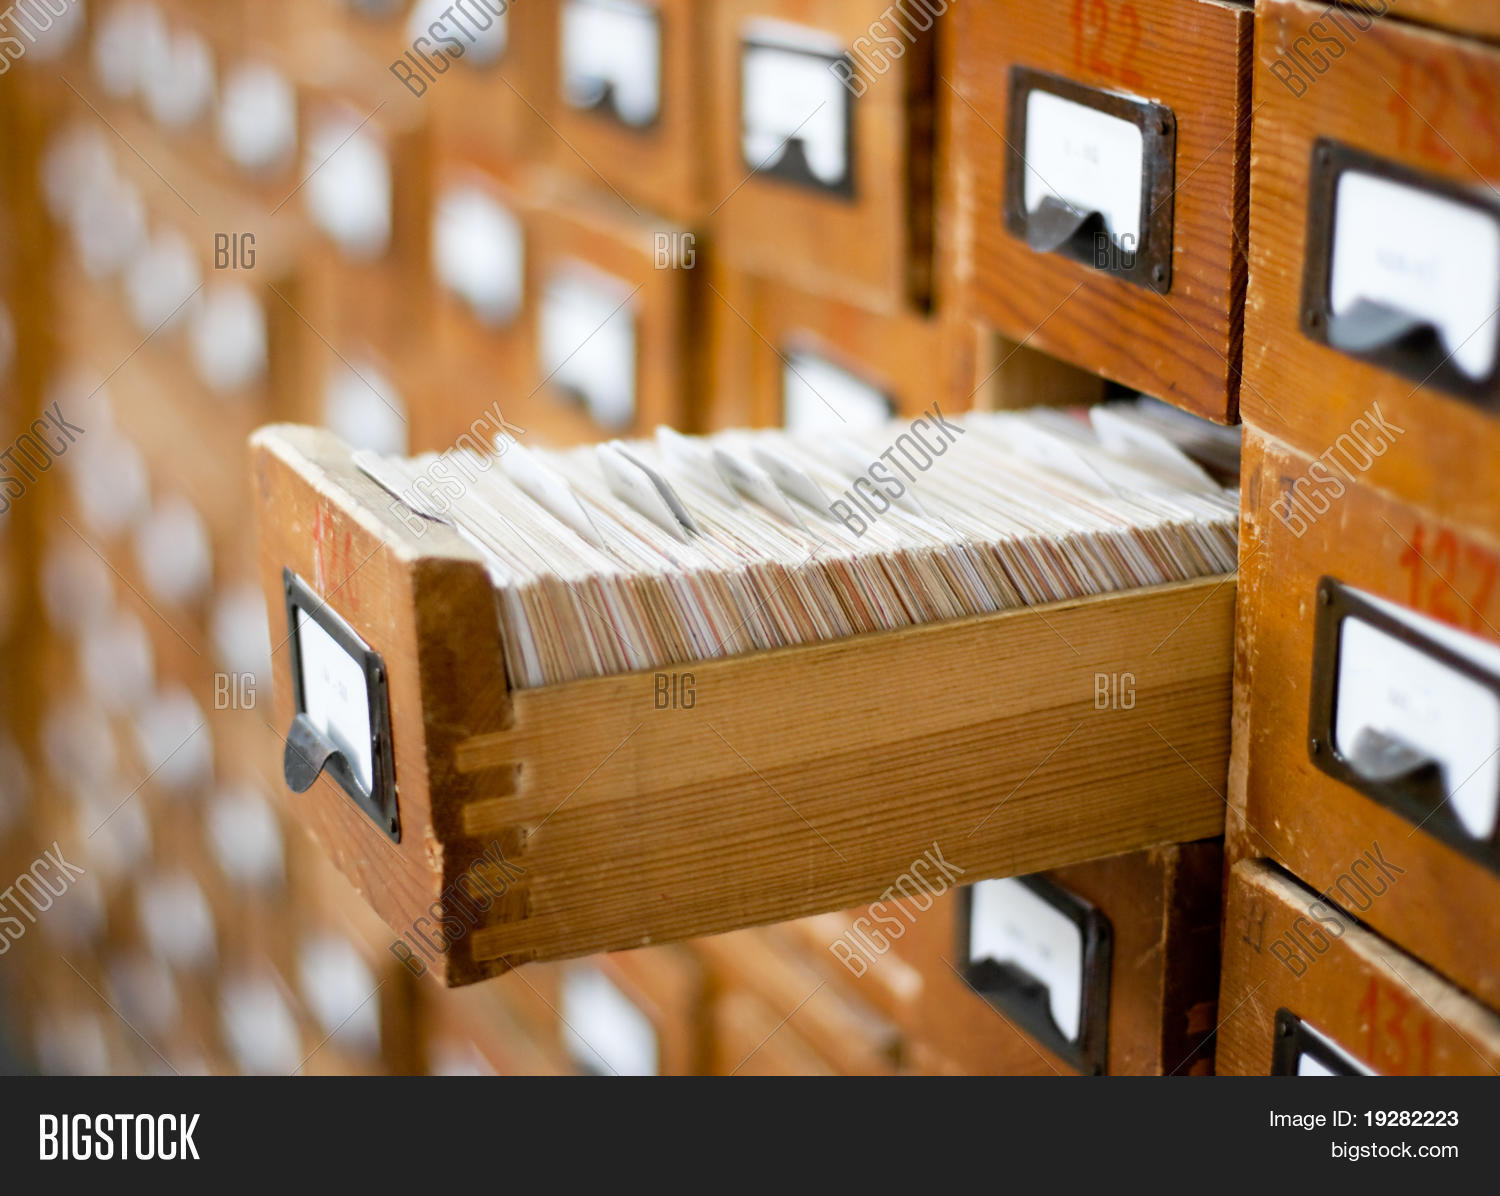 electronic library card catalog system Providing the prince william area with free access to  catalog, fines & more locations  the prince william public library system supports the county vision of.